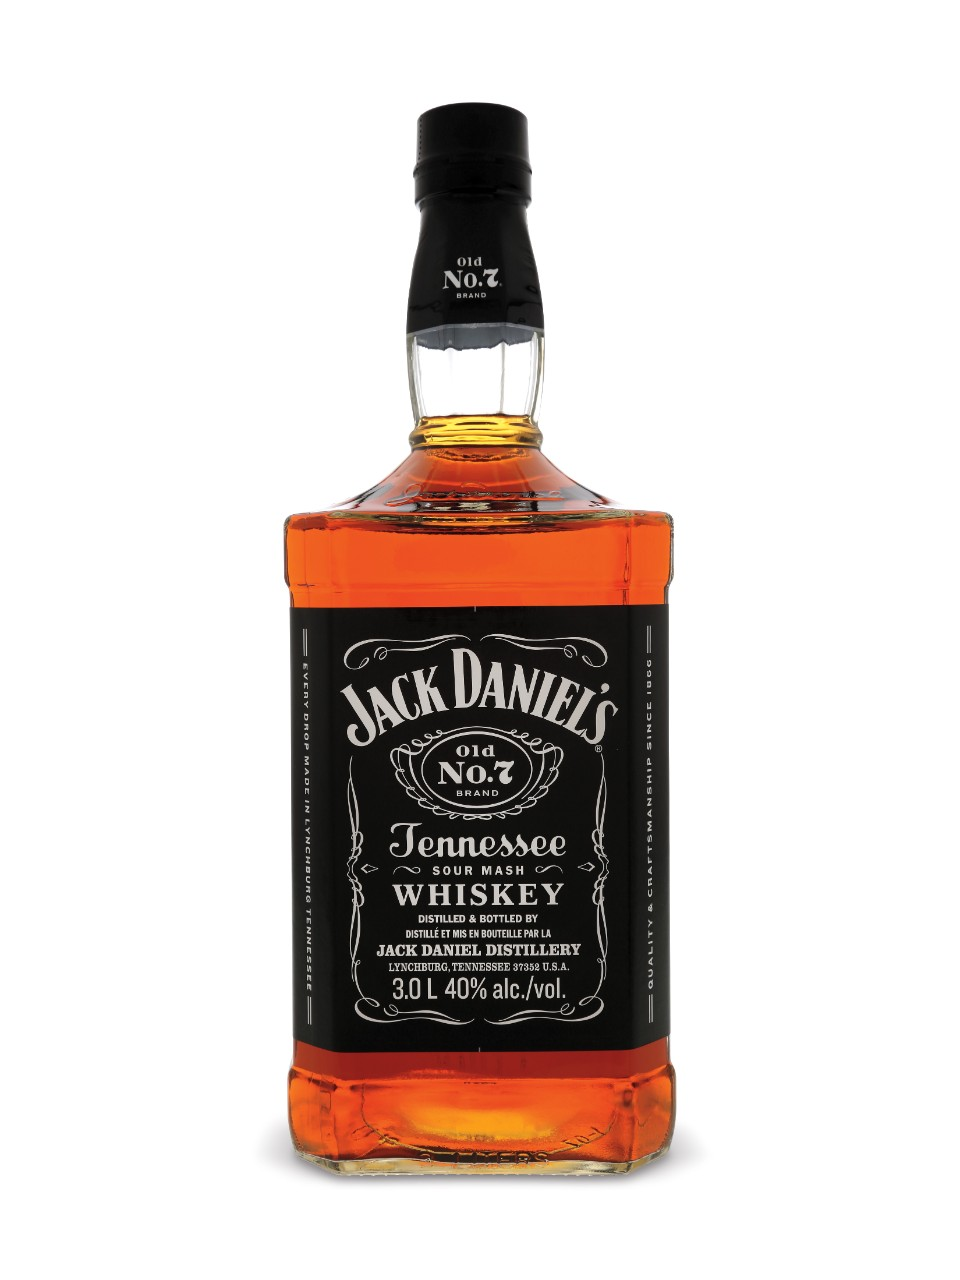 Jack Daniel's Tennessee Whiskey from LCBO